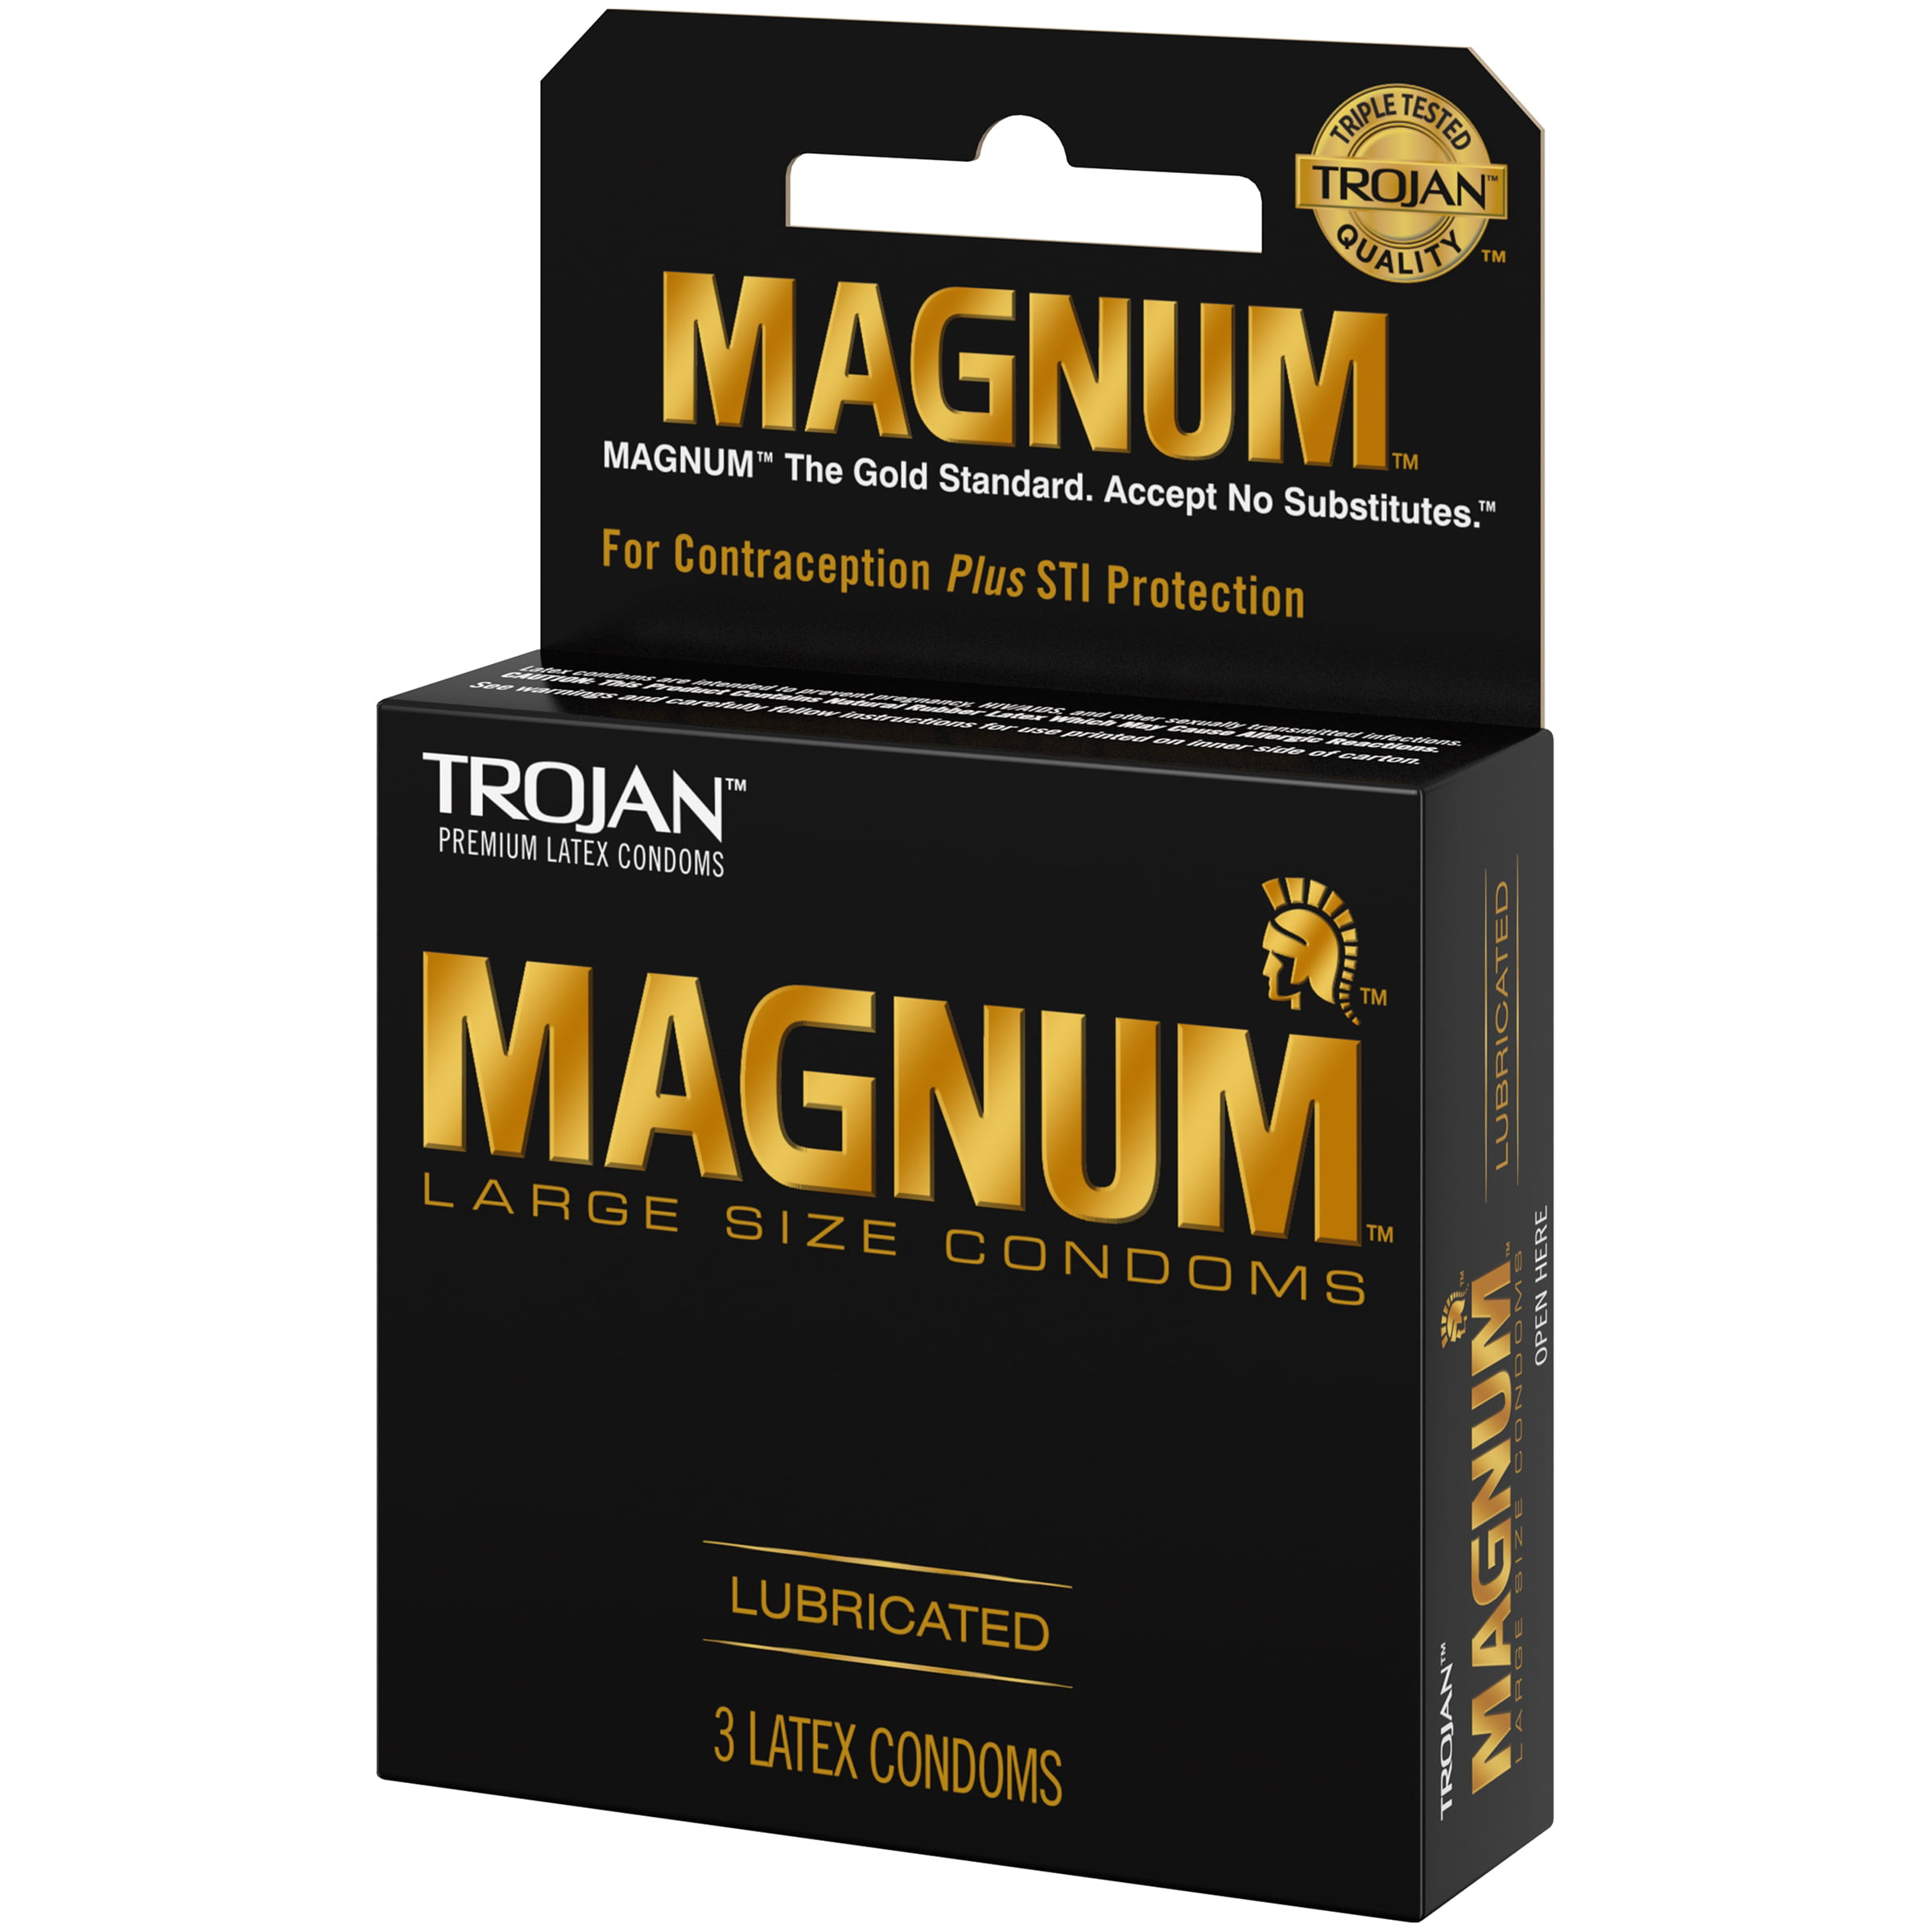 How much are magnum condoms